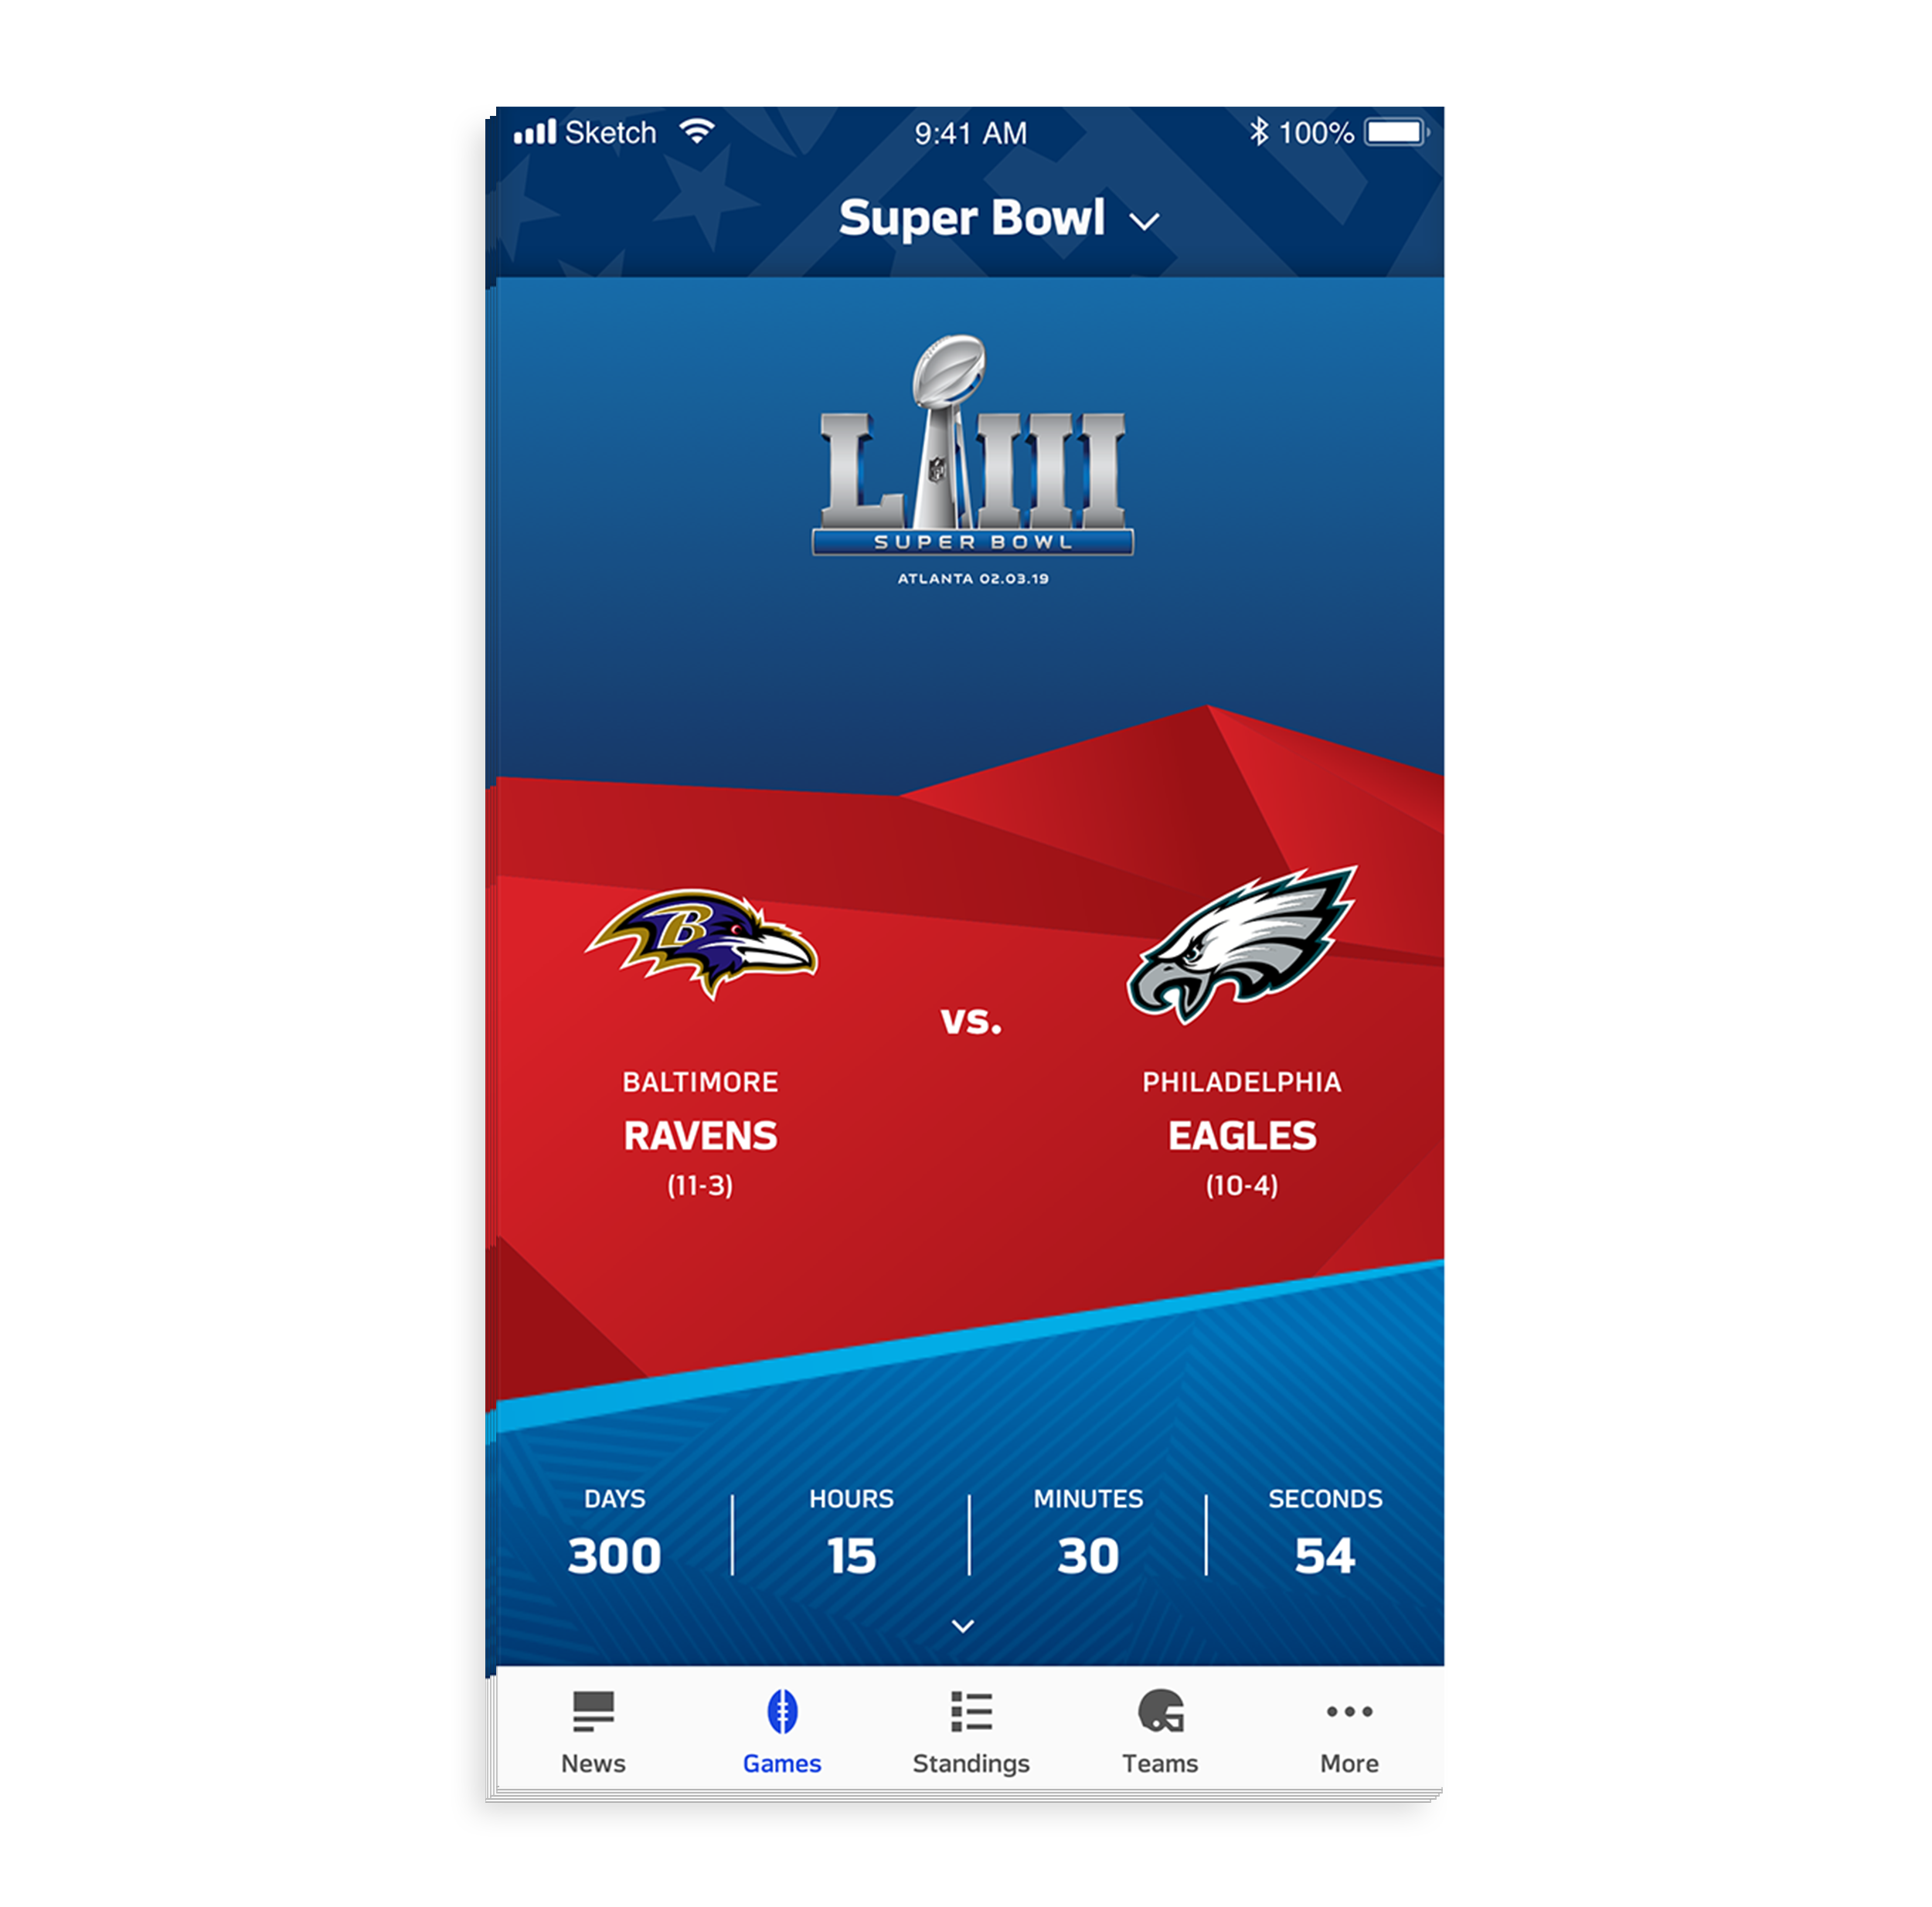 - When users land on the Super Bowl game page, they are greeted with a countdown clock to Super Bowl and the team matchup. This component's design can be reused for other events based off of the NFL style guide.